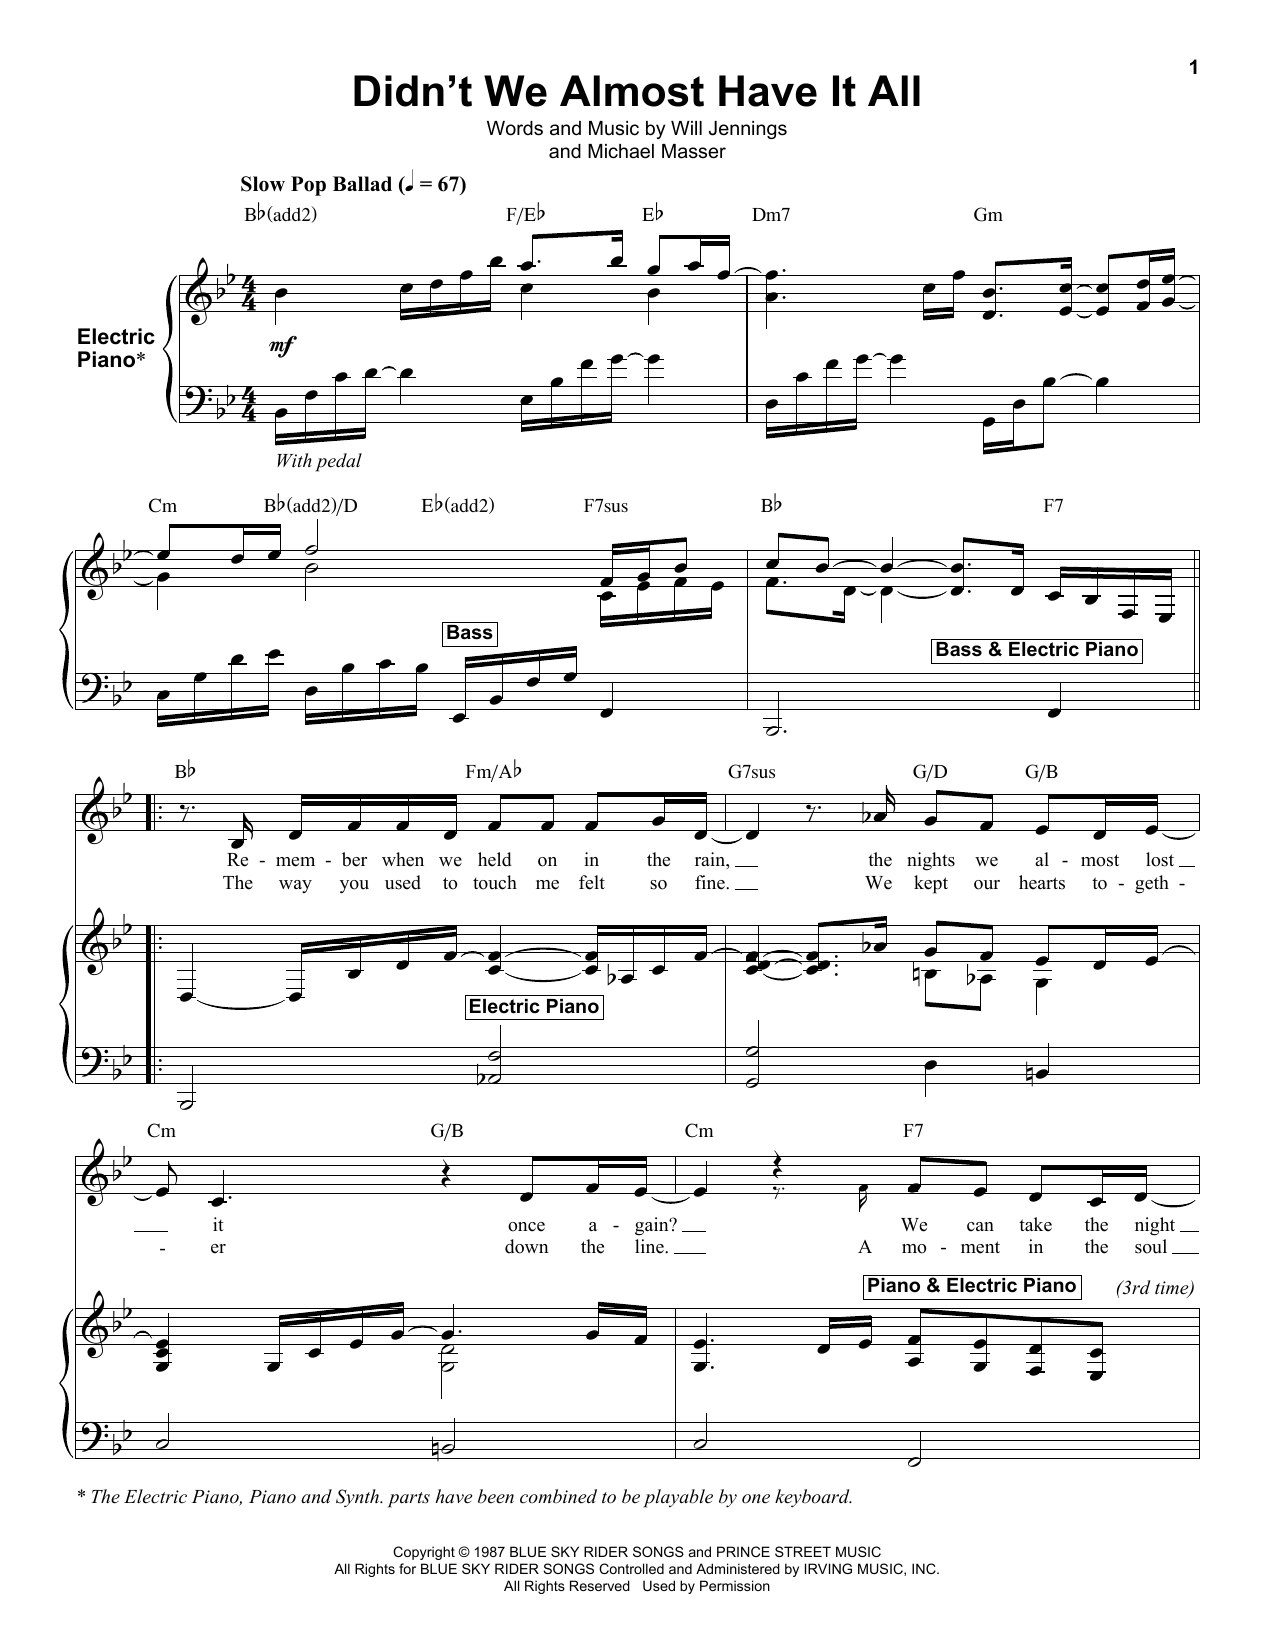 Didn't We Almost Have It All Sheet Music